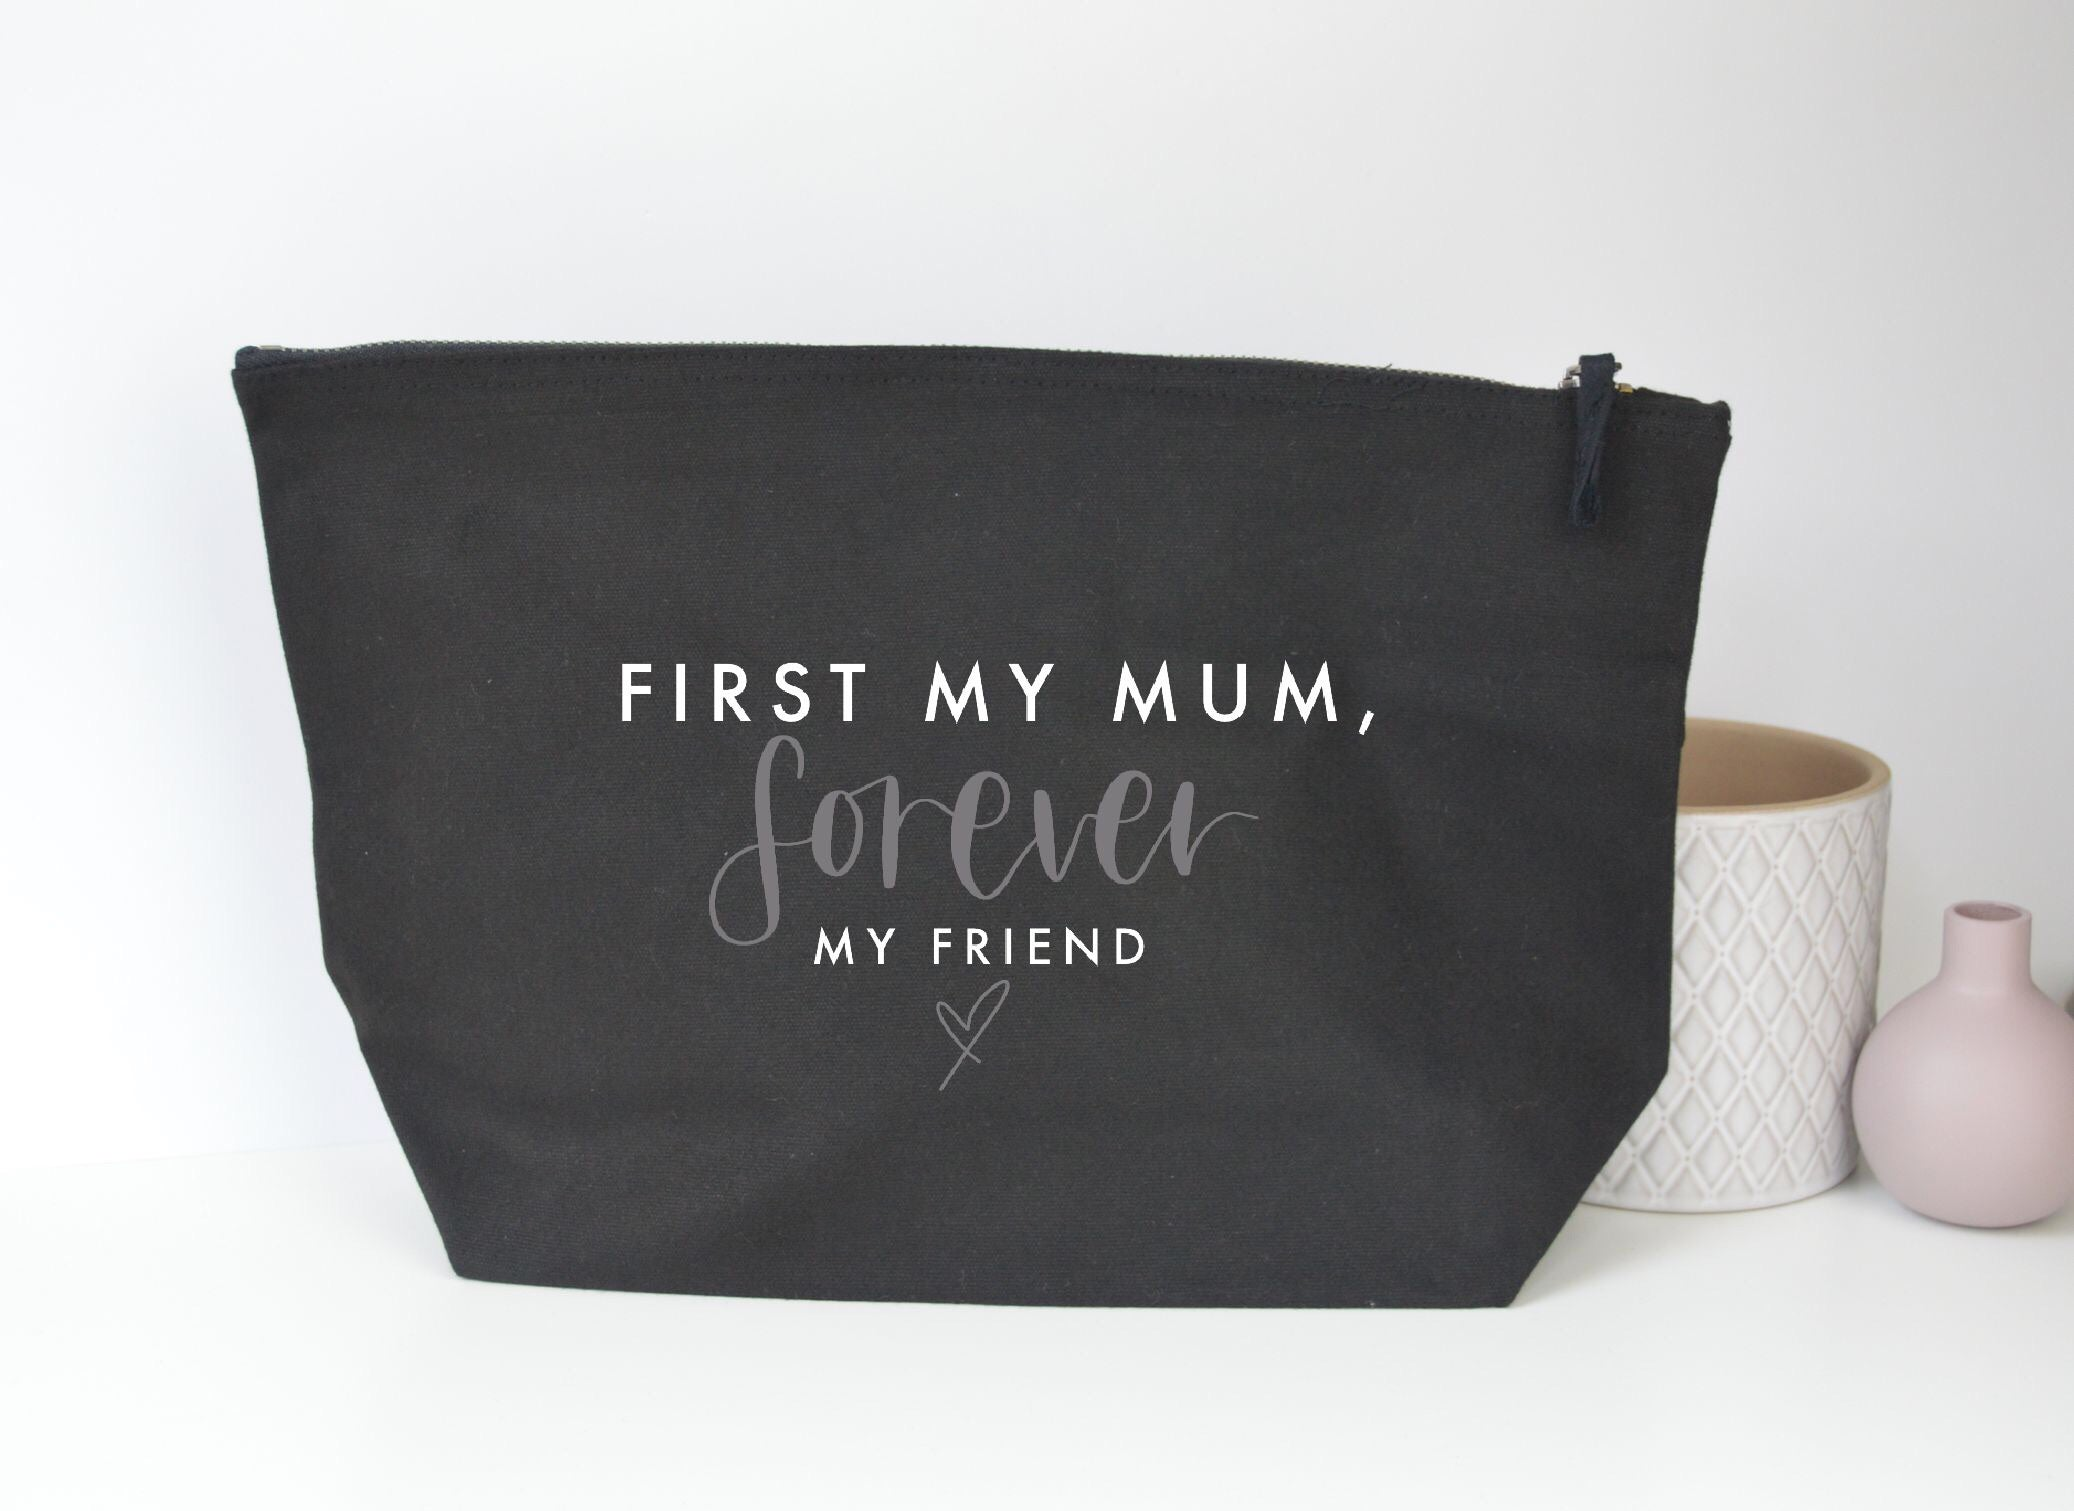 First my Mum, Forever my Friend Pouch - You Make My Dreams